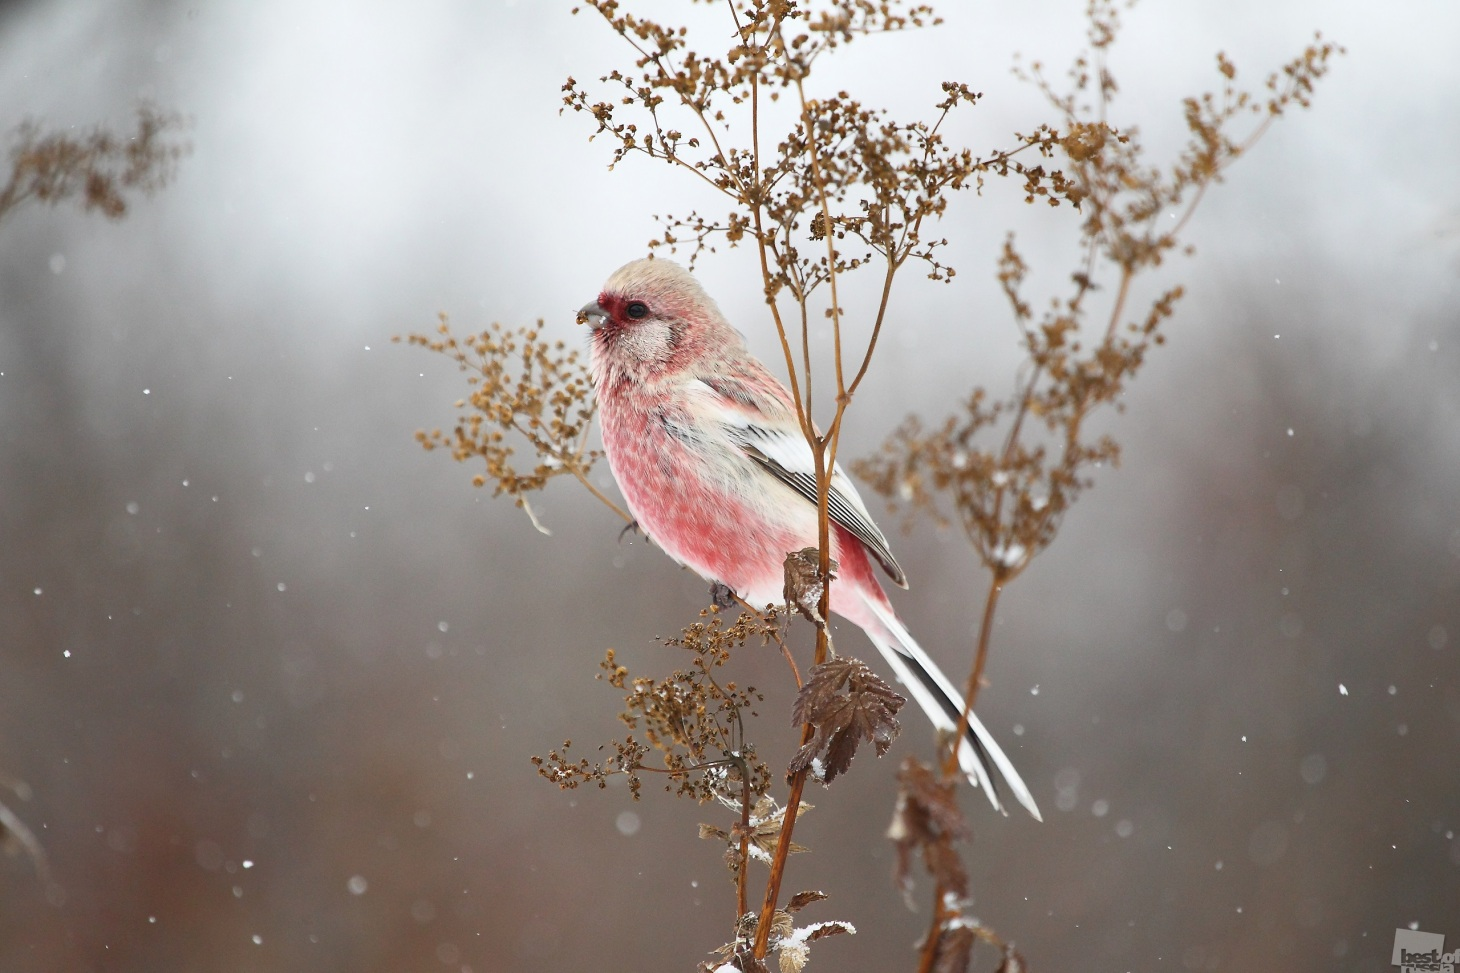 The long-tailed rosefinch, a non-migratory bird common to Siberia and the Urals.